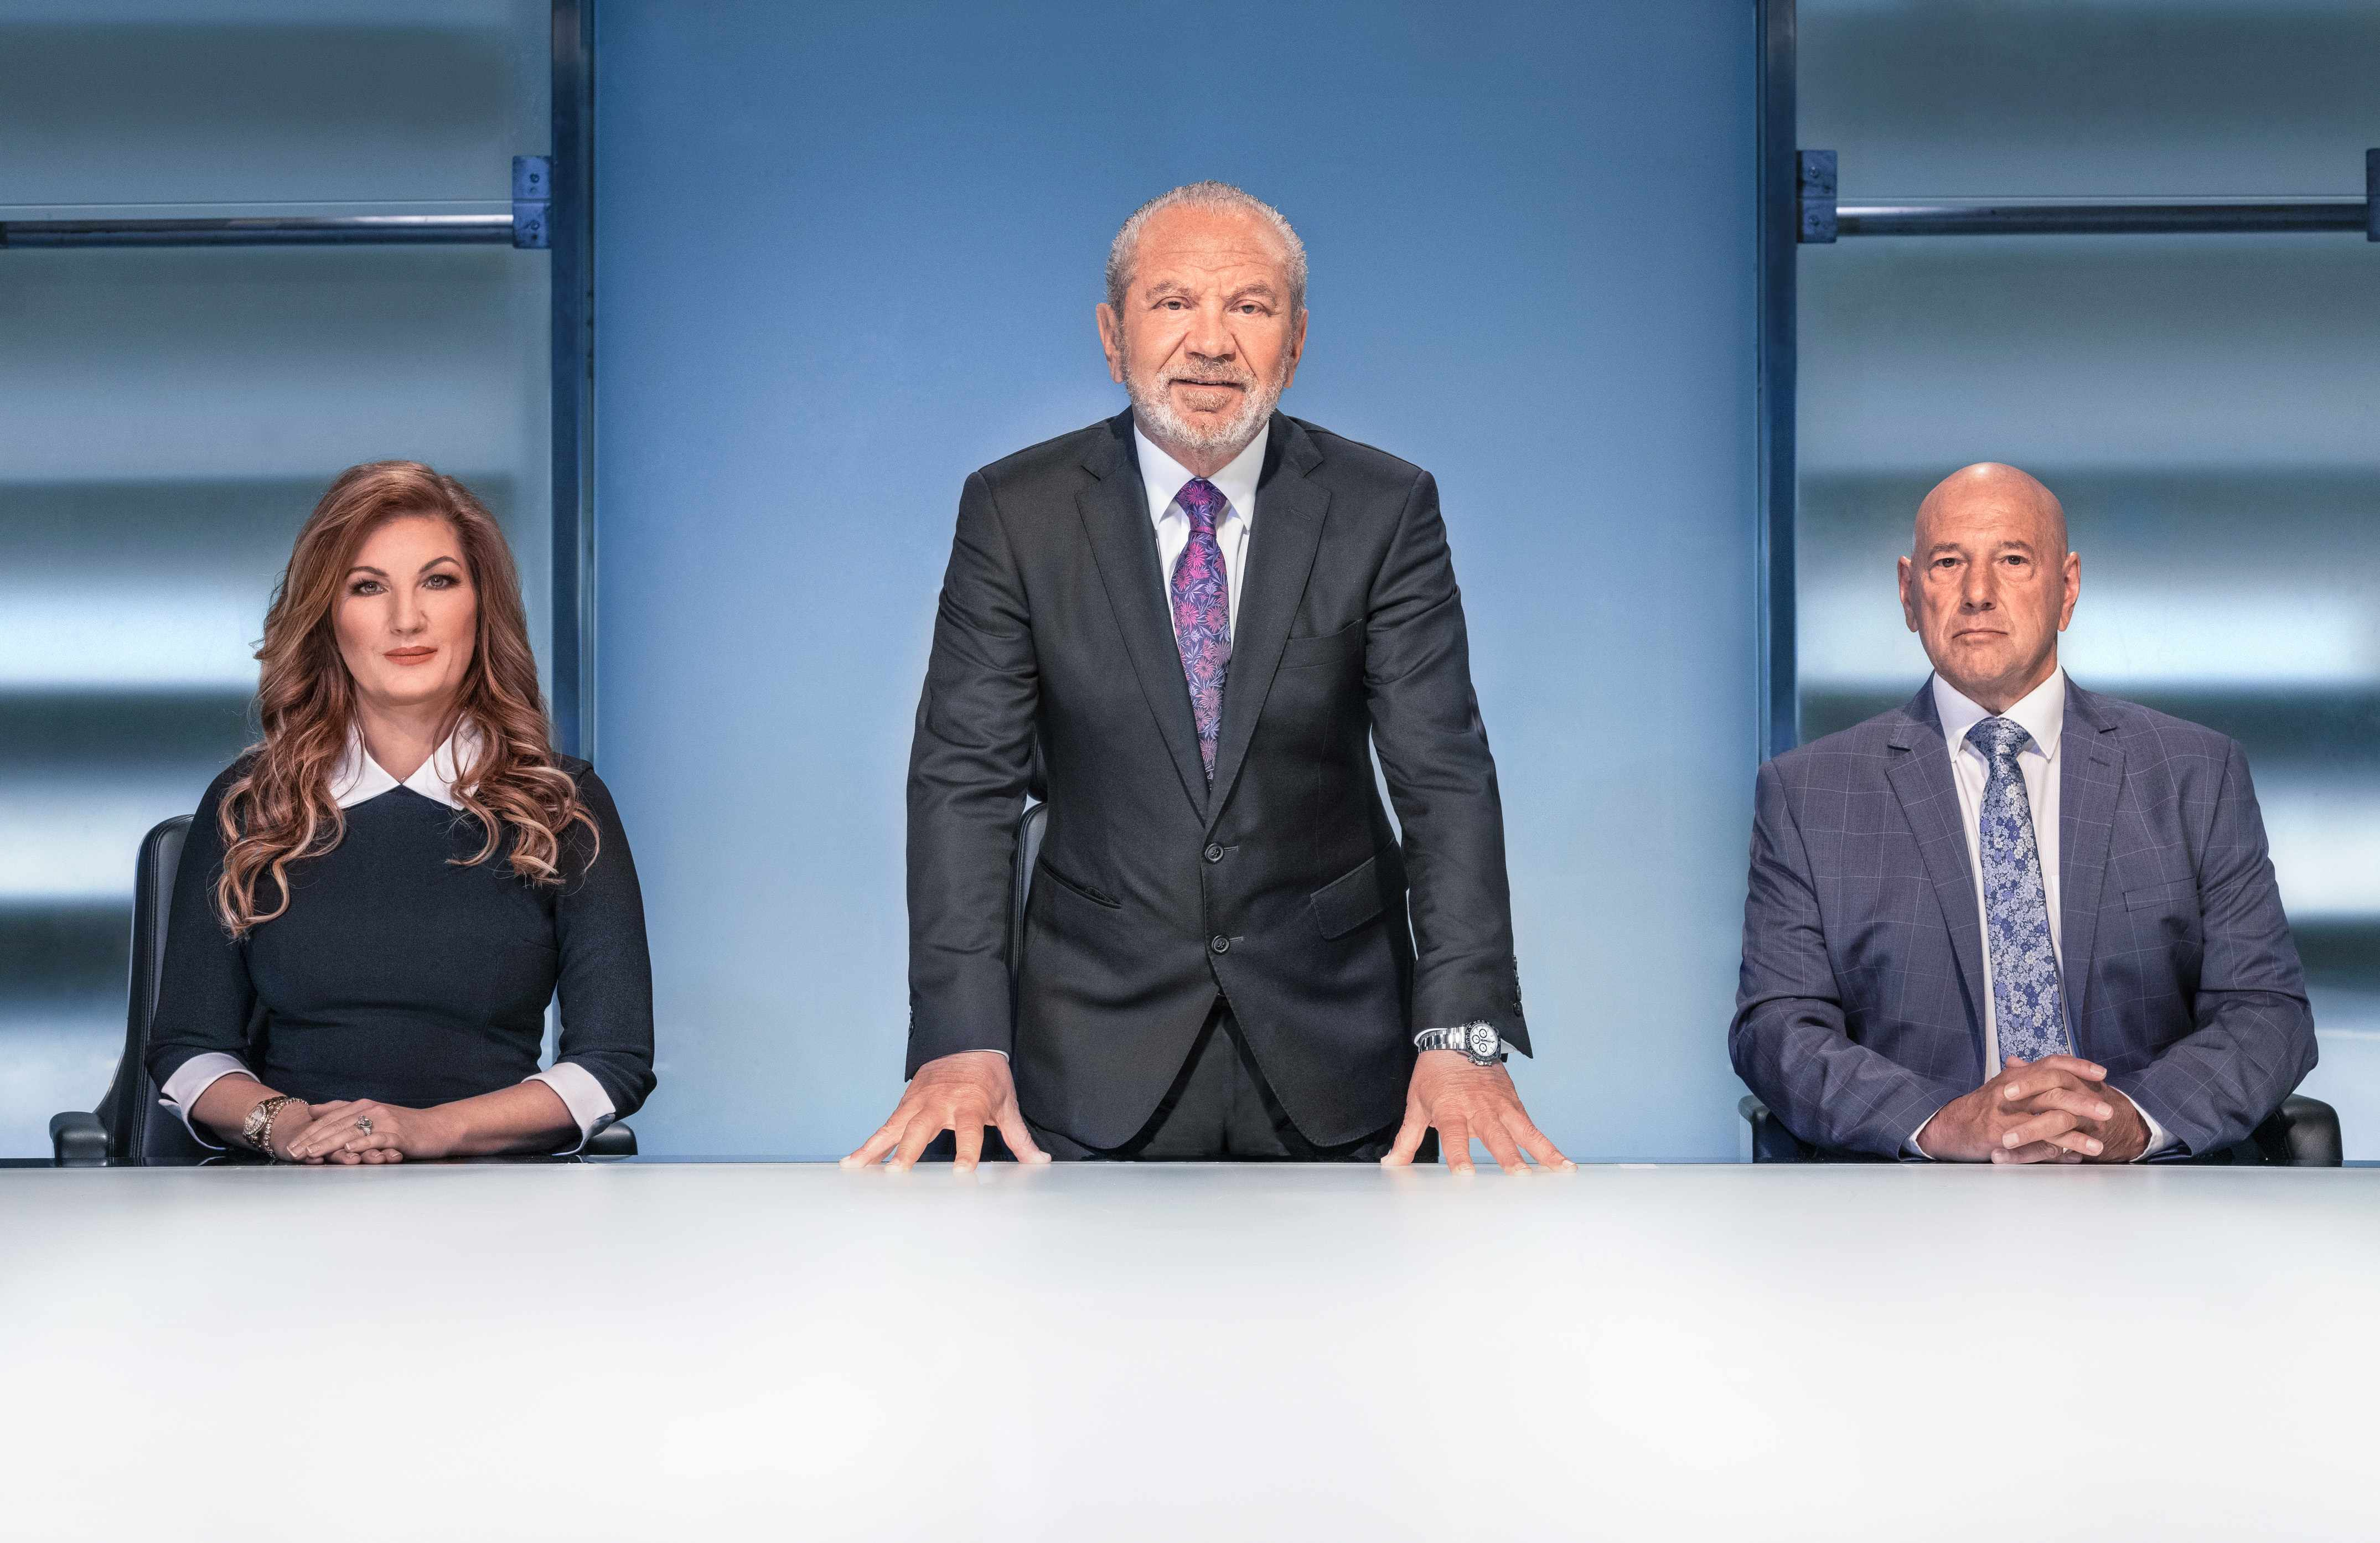 WARNING: Embargoed for publication until 10:00:01 on 25/09/2018 - Programme Name: The Apprentice  - TX: n/a - Episode: n/a (No. n/a) - Picture Shows: **IMAGE EMBARGOED FROM PUBLICATION UNTIL 10AM TUESDAY 25TH SEPTEMBER 2018** Baroness Brady, Lord Sugar, Claude Littner - (C) Boundless Taylor Herring - Photographer: Jim Marks TL